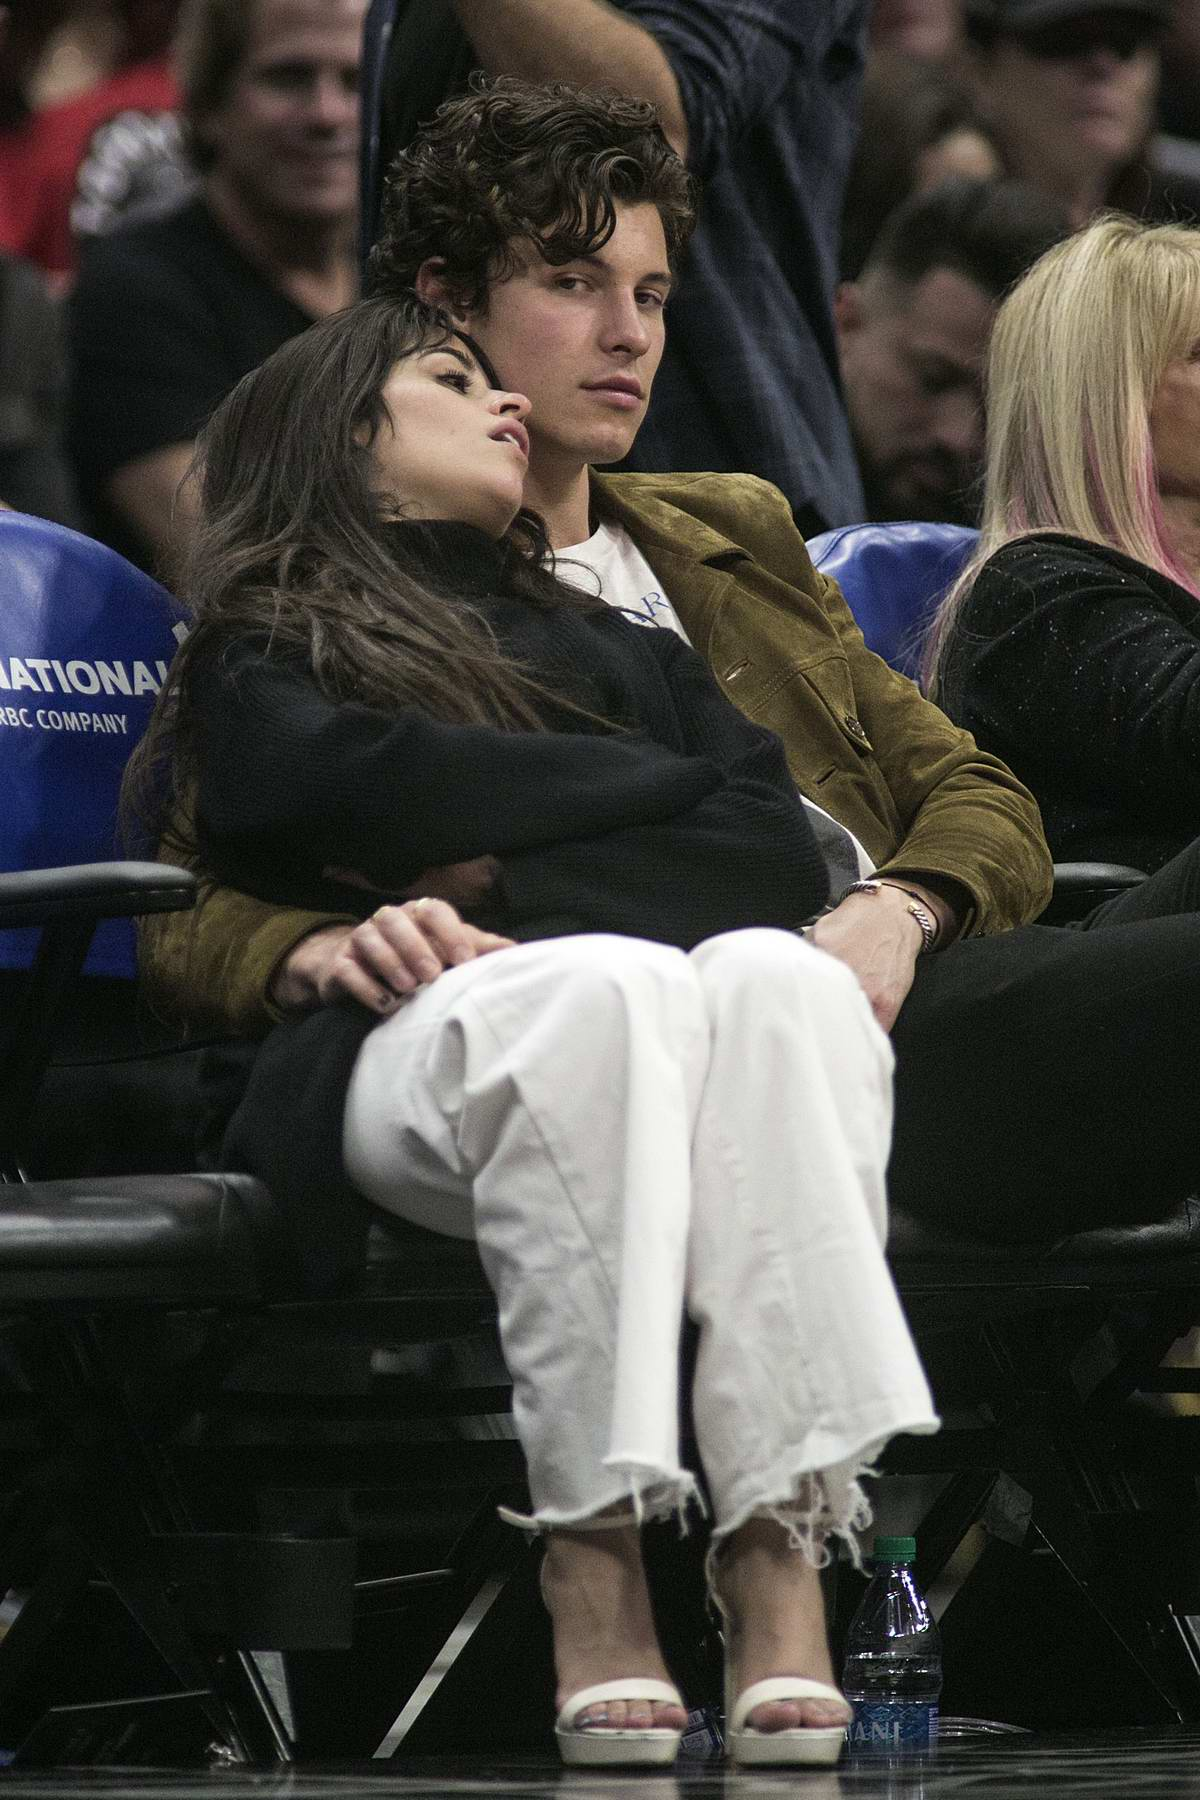 Camilla Cabello and Shawn Mendes pack on some PDA during Los Angeles Clippers vs Toronto Raptors game in Los Angeles